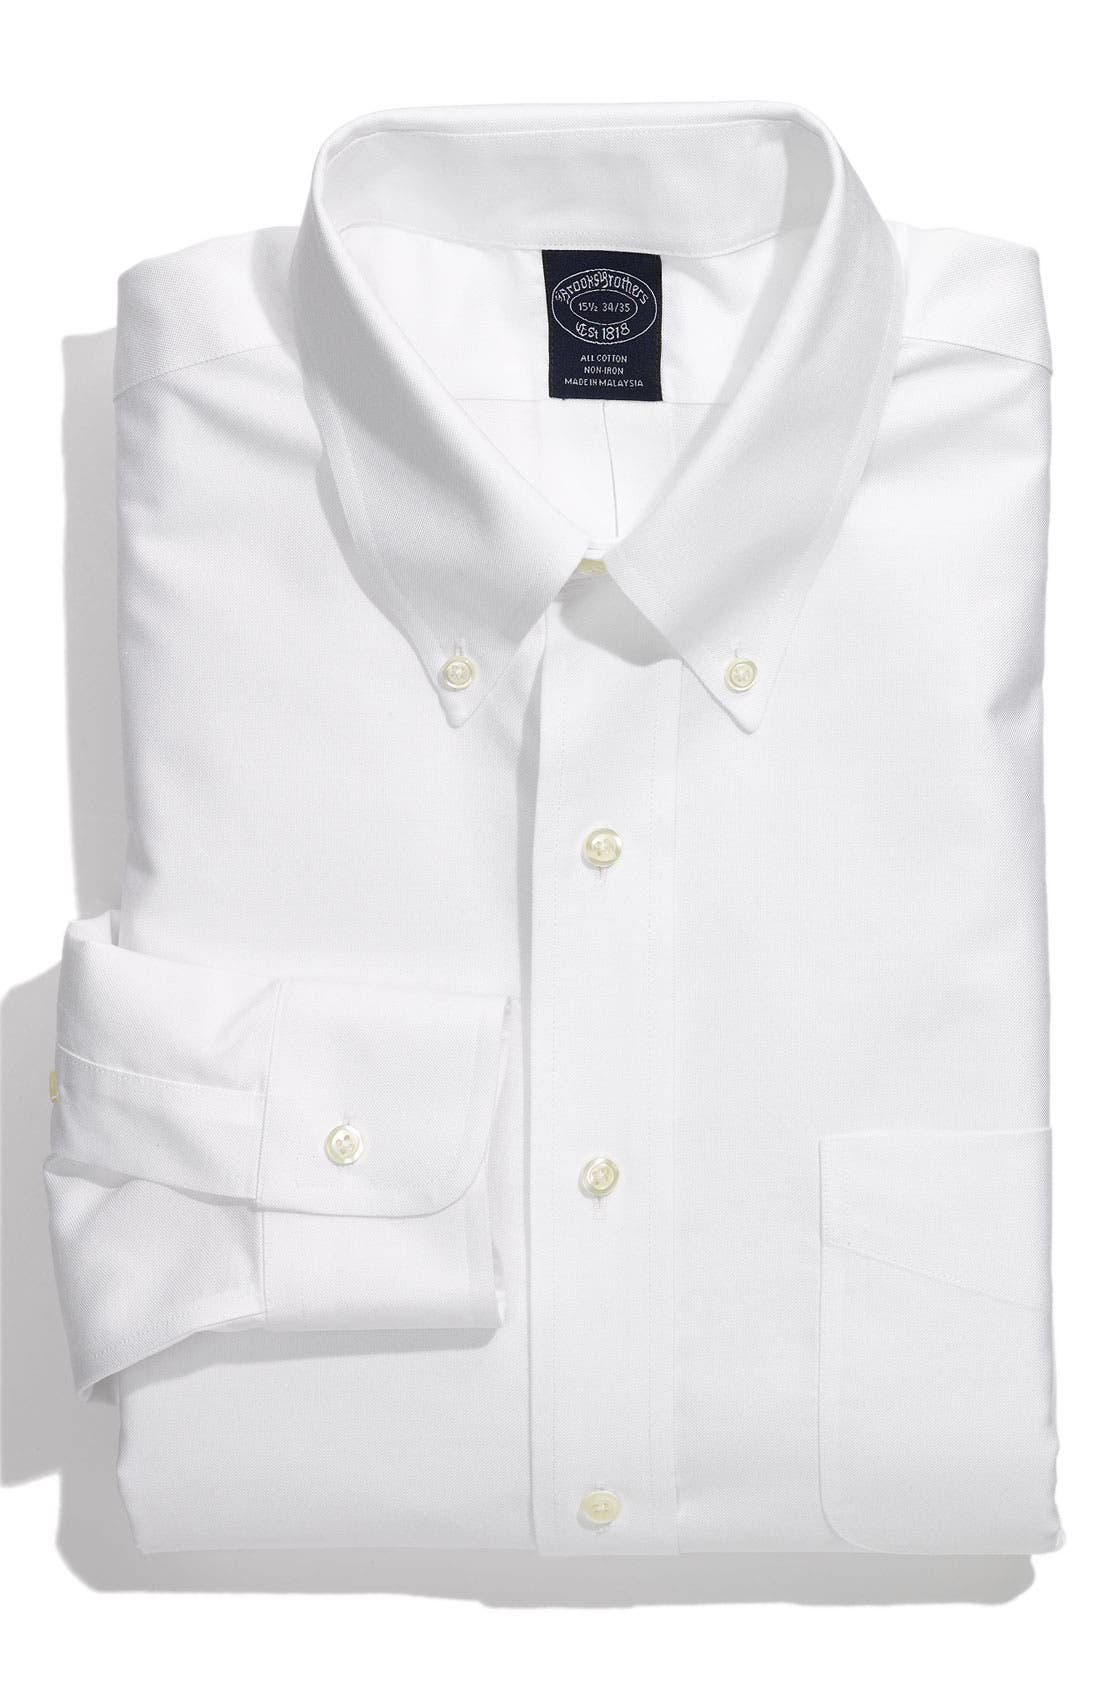 Alternate Image 1 Selected - Brooks Brothers Non-Iron Oxford Dress Shirt